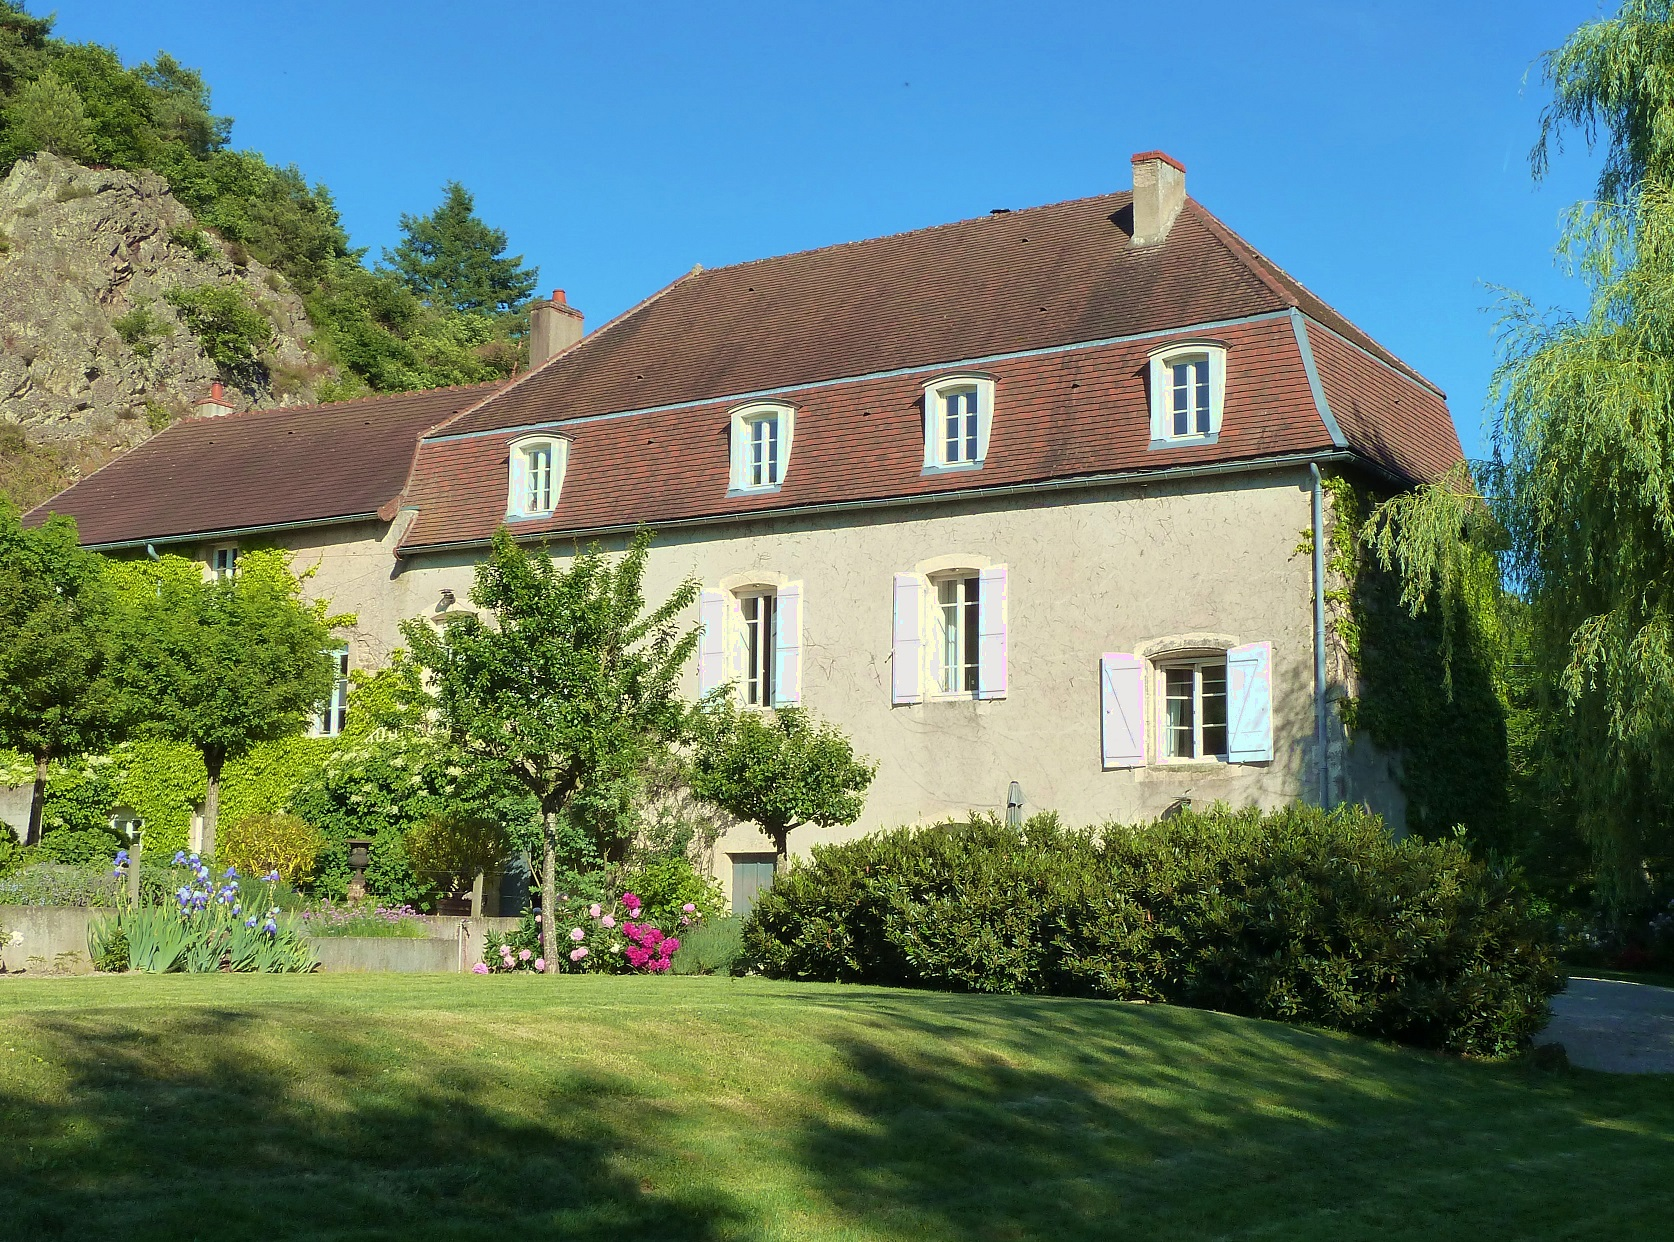 Esszimmer 20m2 Beautiful Converted Watermill For Sale In Burgundy Saone Et Loire